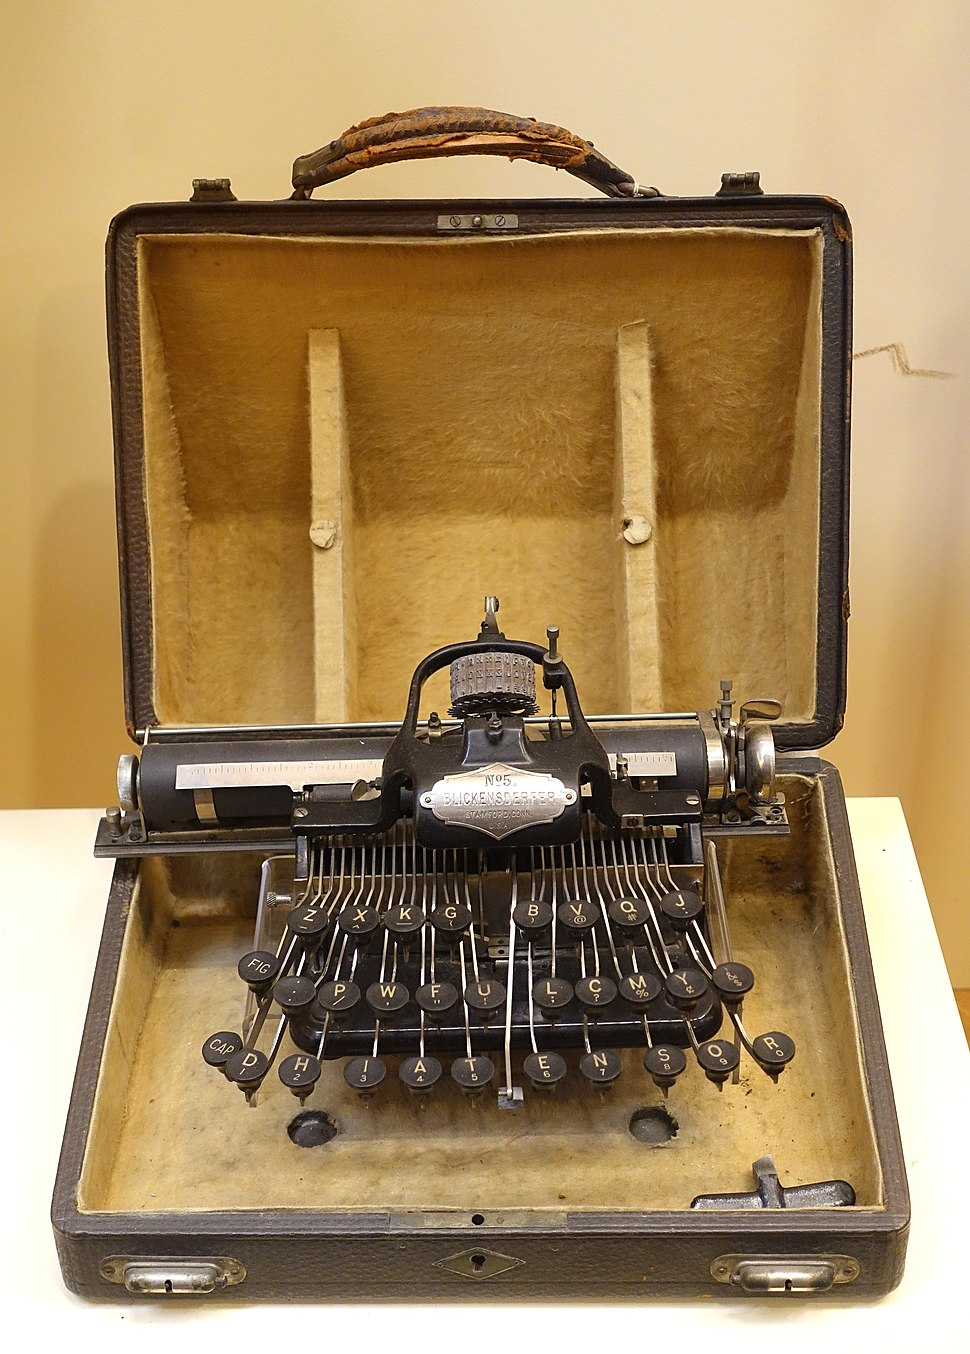 Blickensderfer No. 5 Portable Typewriter, 1889, made by Blickensdorf Manufacturing Company - Museum of Science and Industry (Chicago) - DSC06623